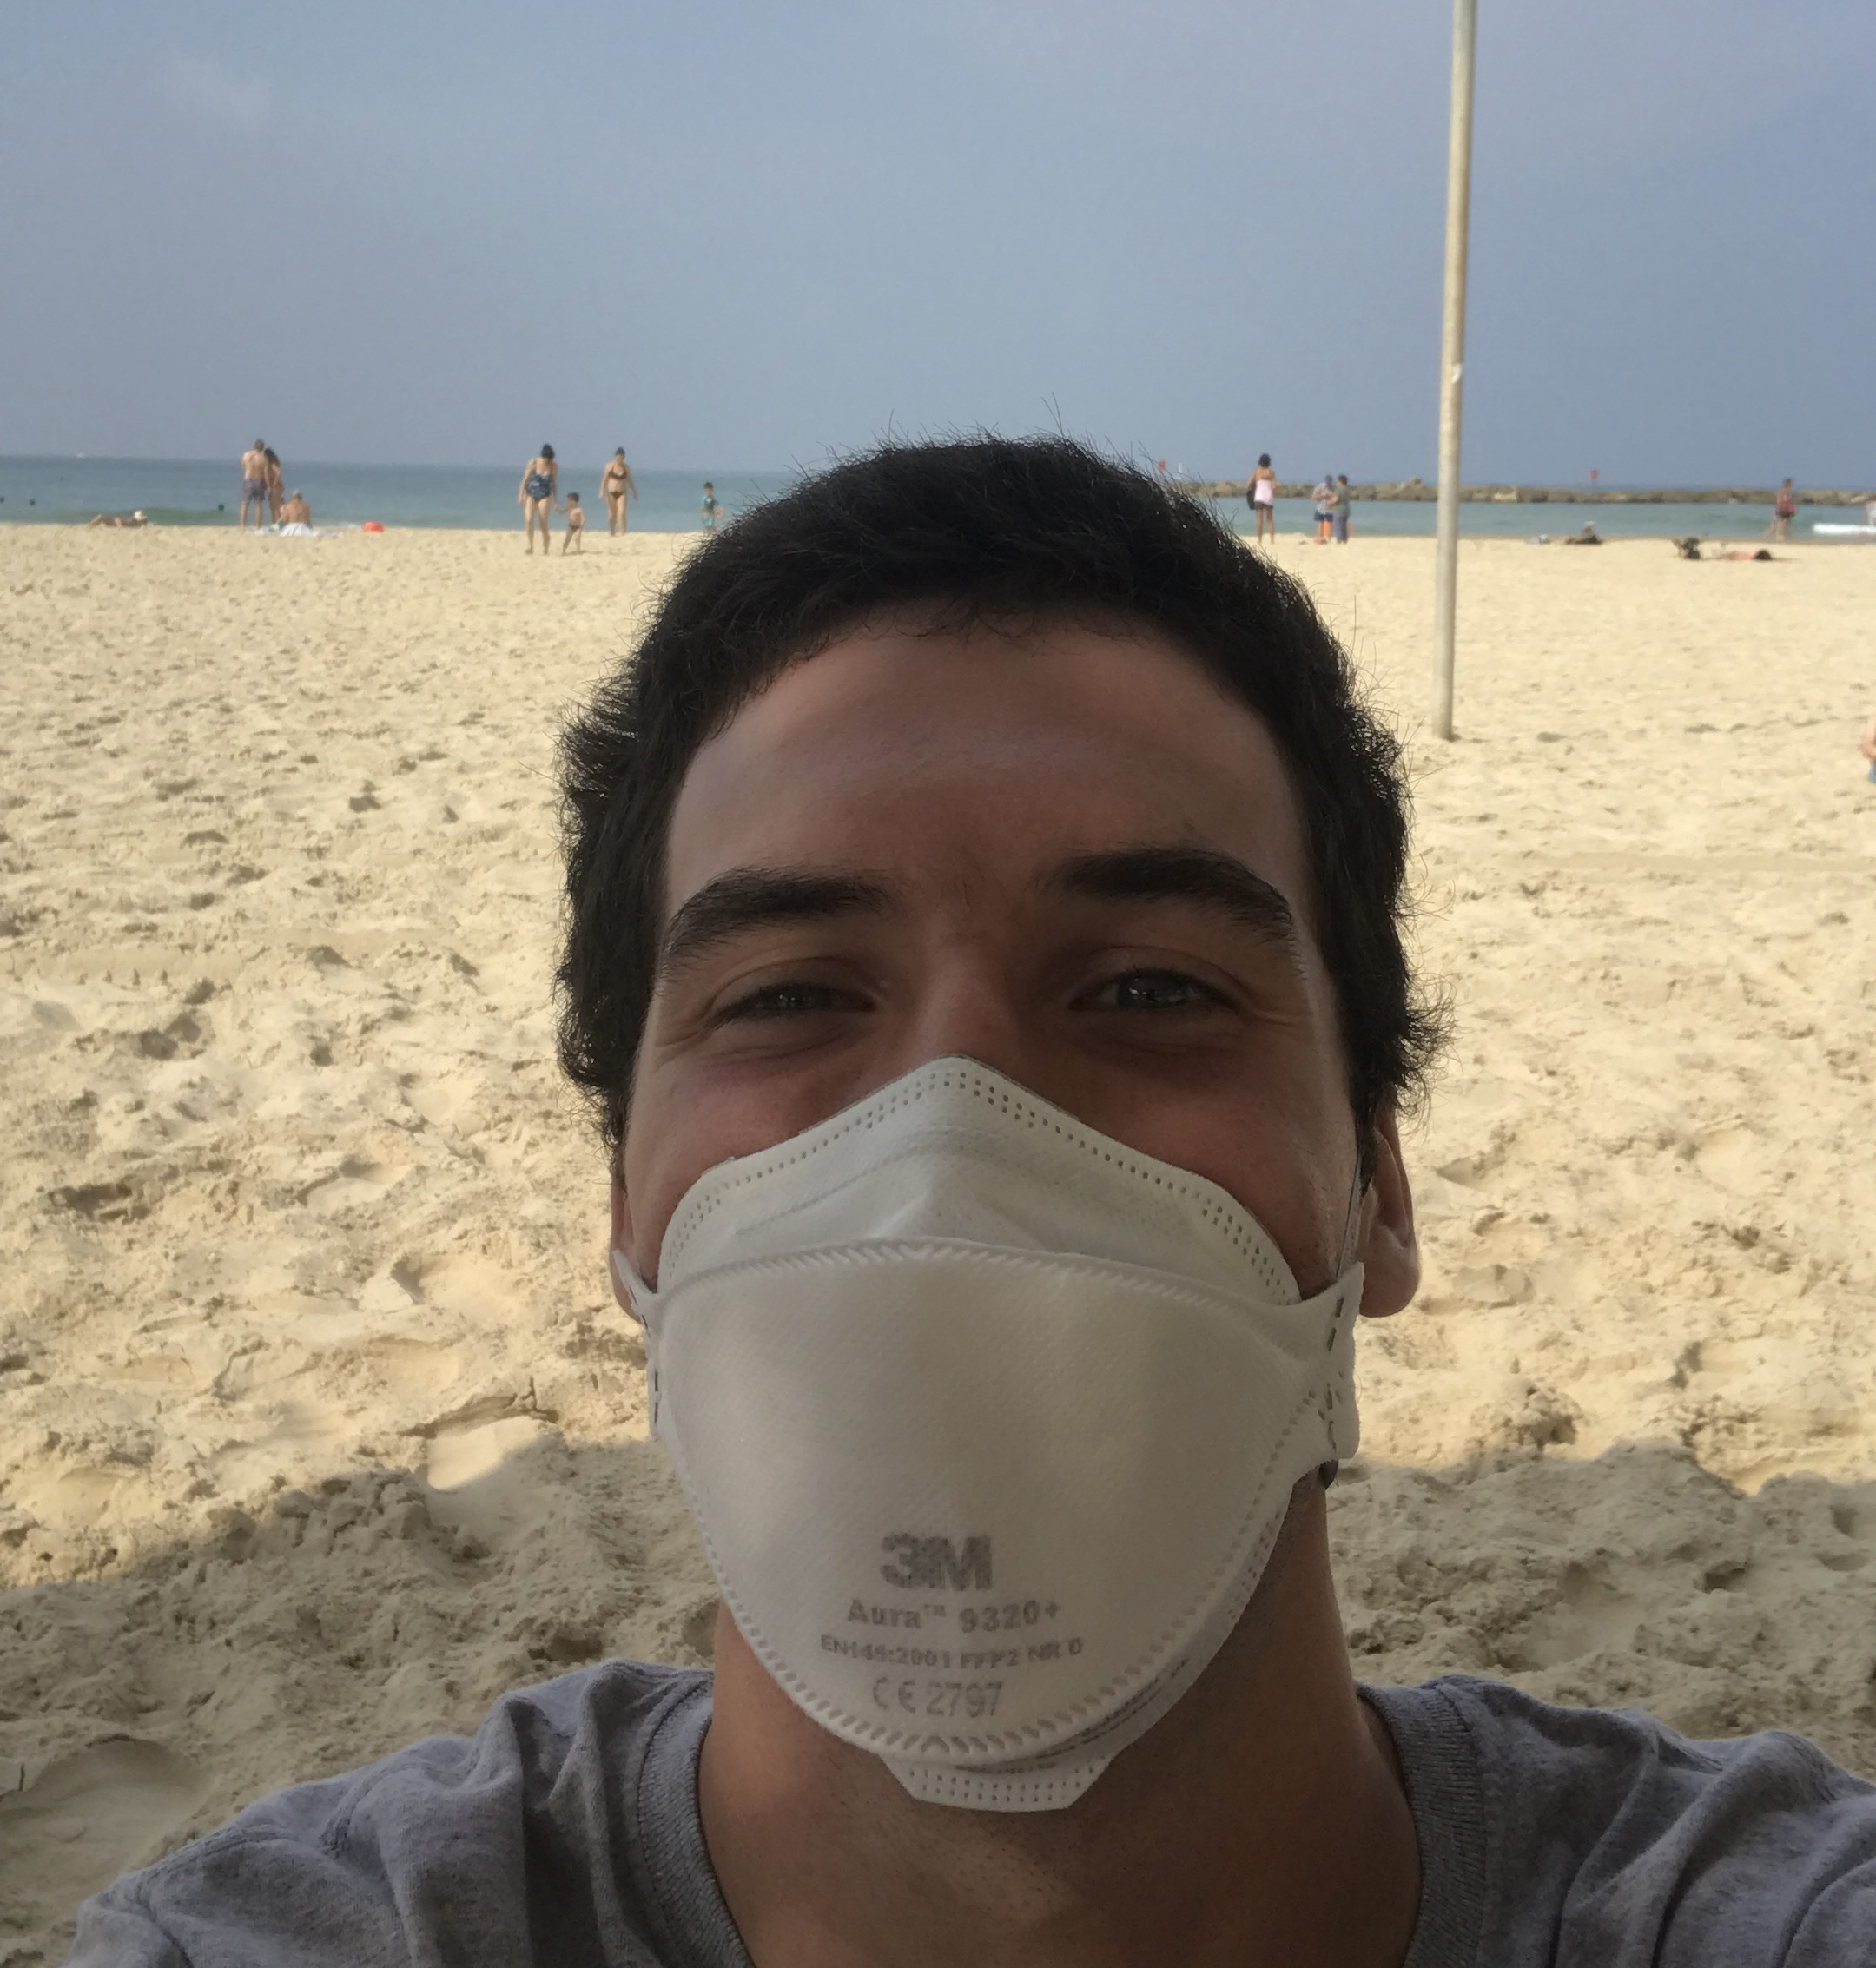 Selfie of Josh Glucksman wearing a face mask on a beach